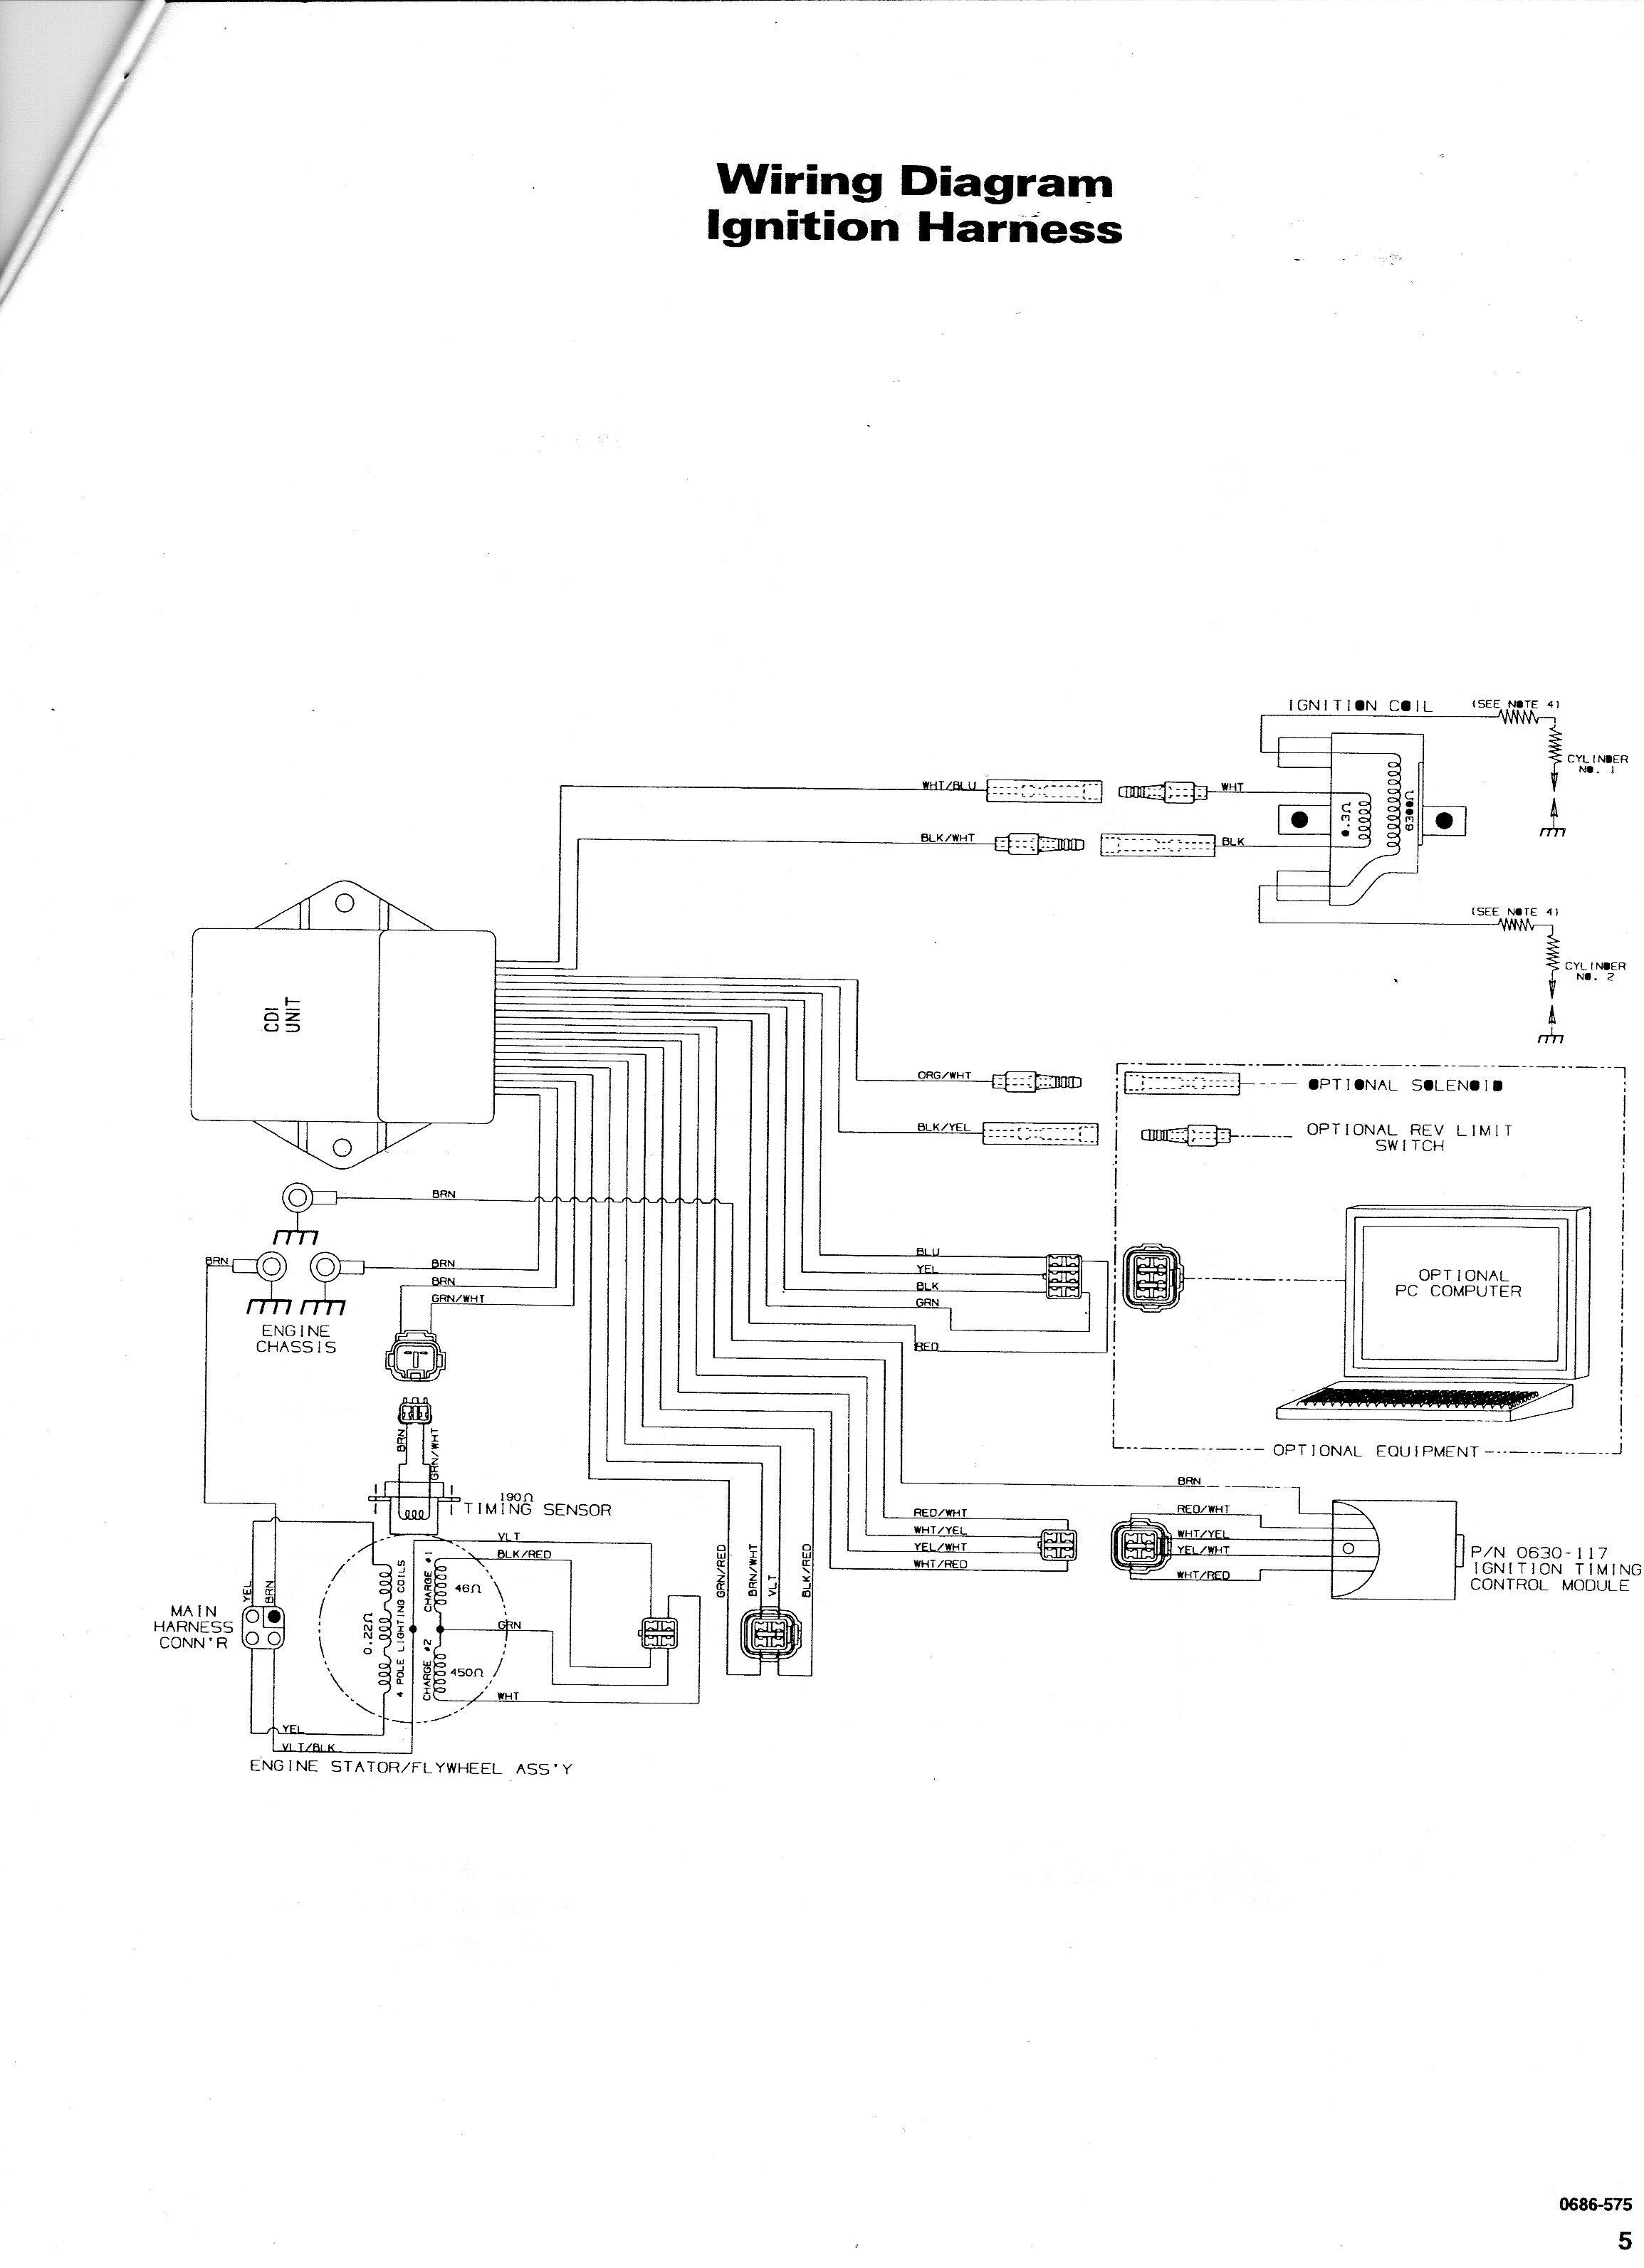 Jag 340 Wiring Diagram | Wiring Diagram Hand Warmer Wiring Diagram Jag on